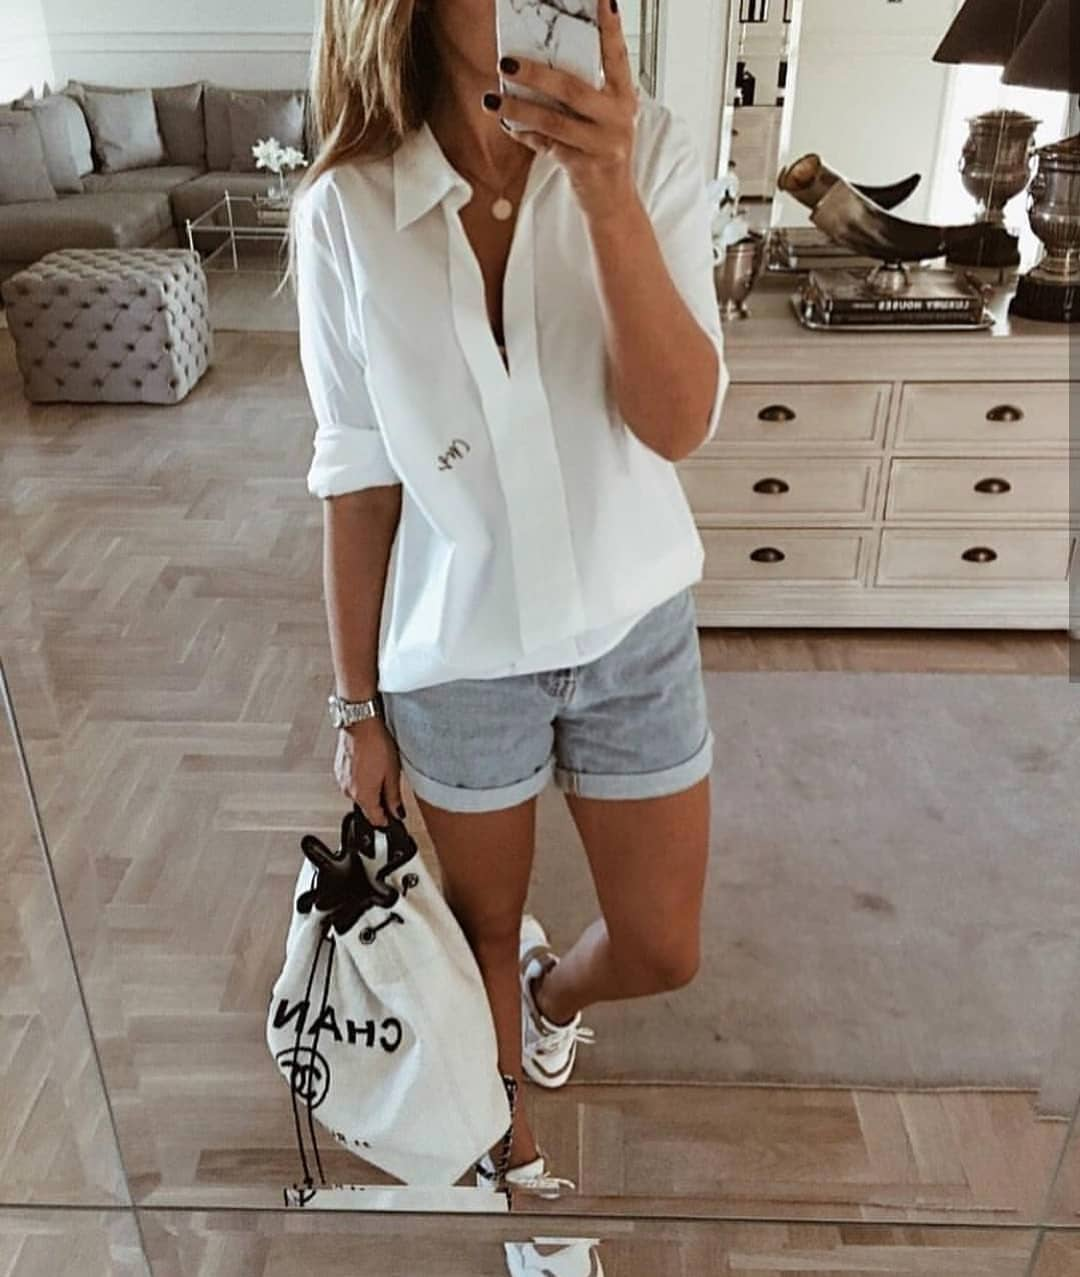 Silk Shirt In White With Denim Shorts And White Sneakers For Summer 2020